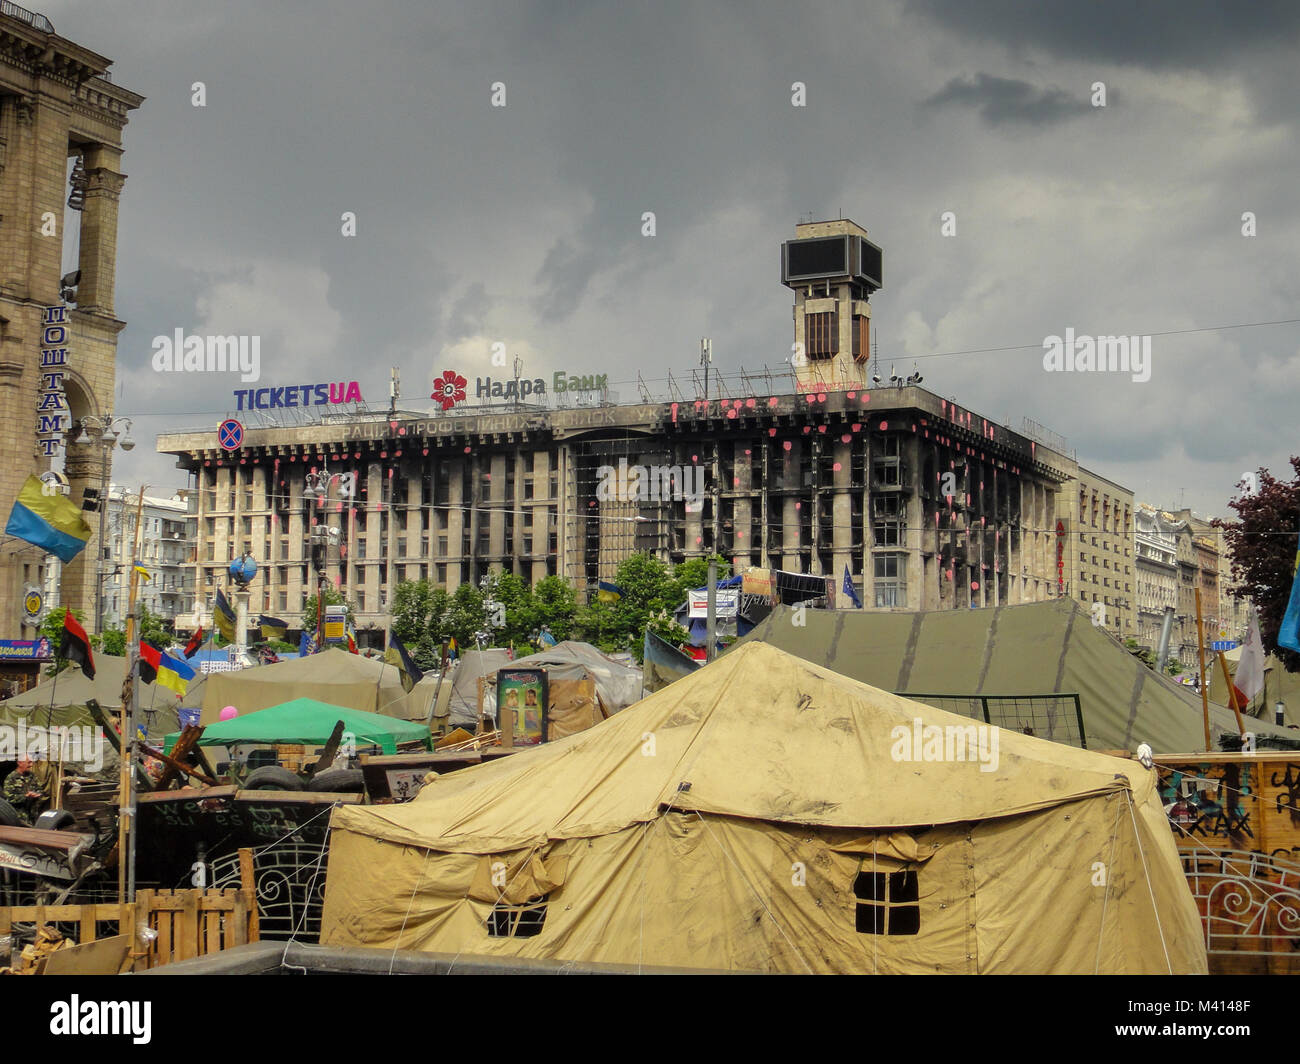 Trade Unions Building, Kiev, during the Euromaidan protests in 2014 - Stock Image